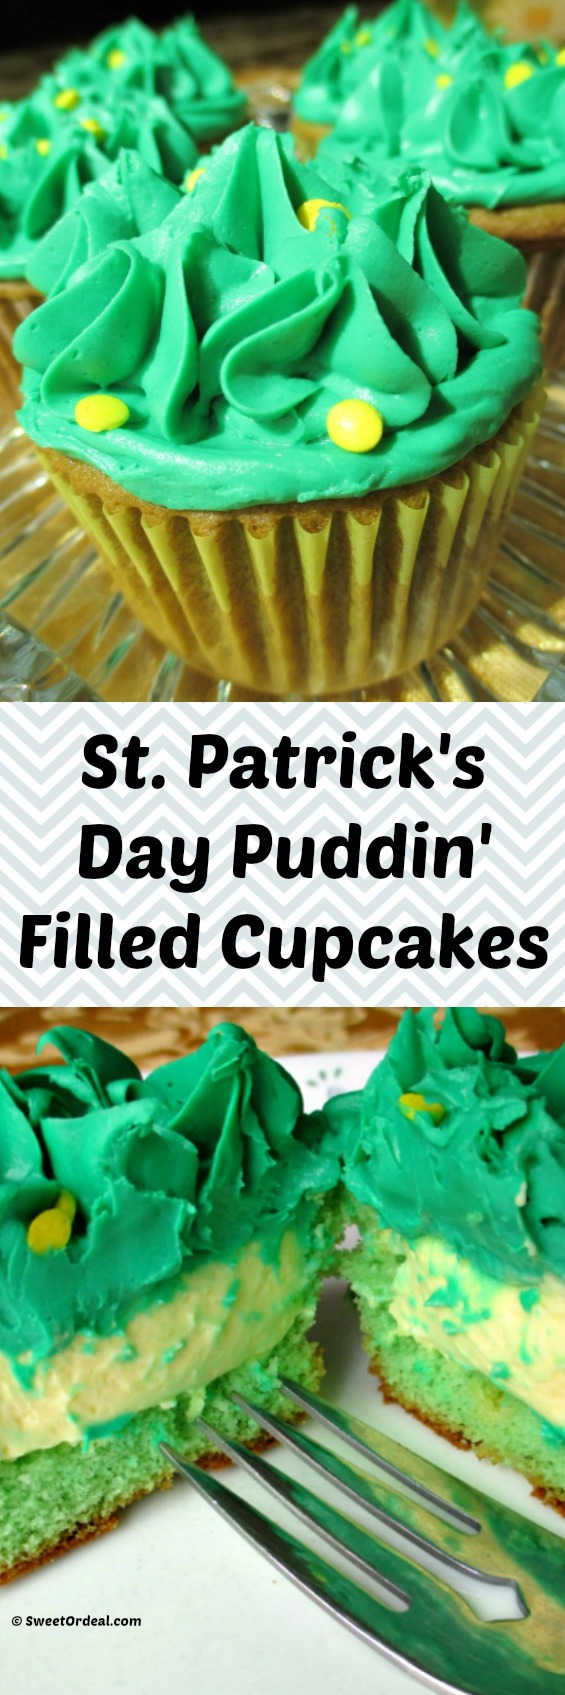 St. Patrick's Day Puddin' Filled Cupcakes